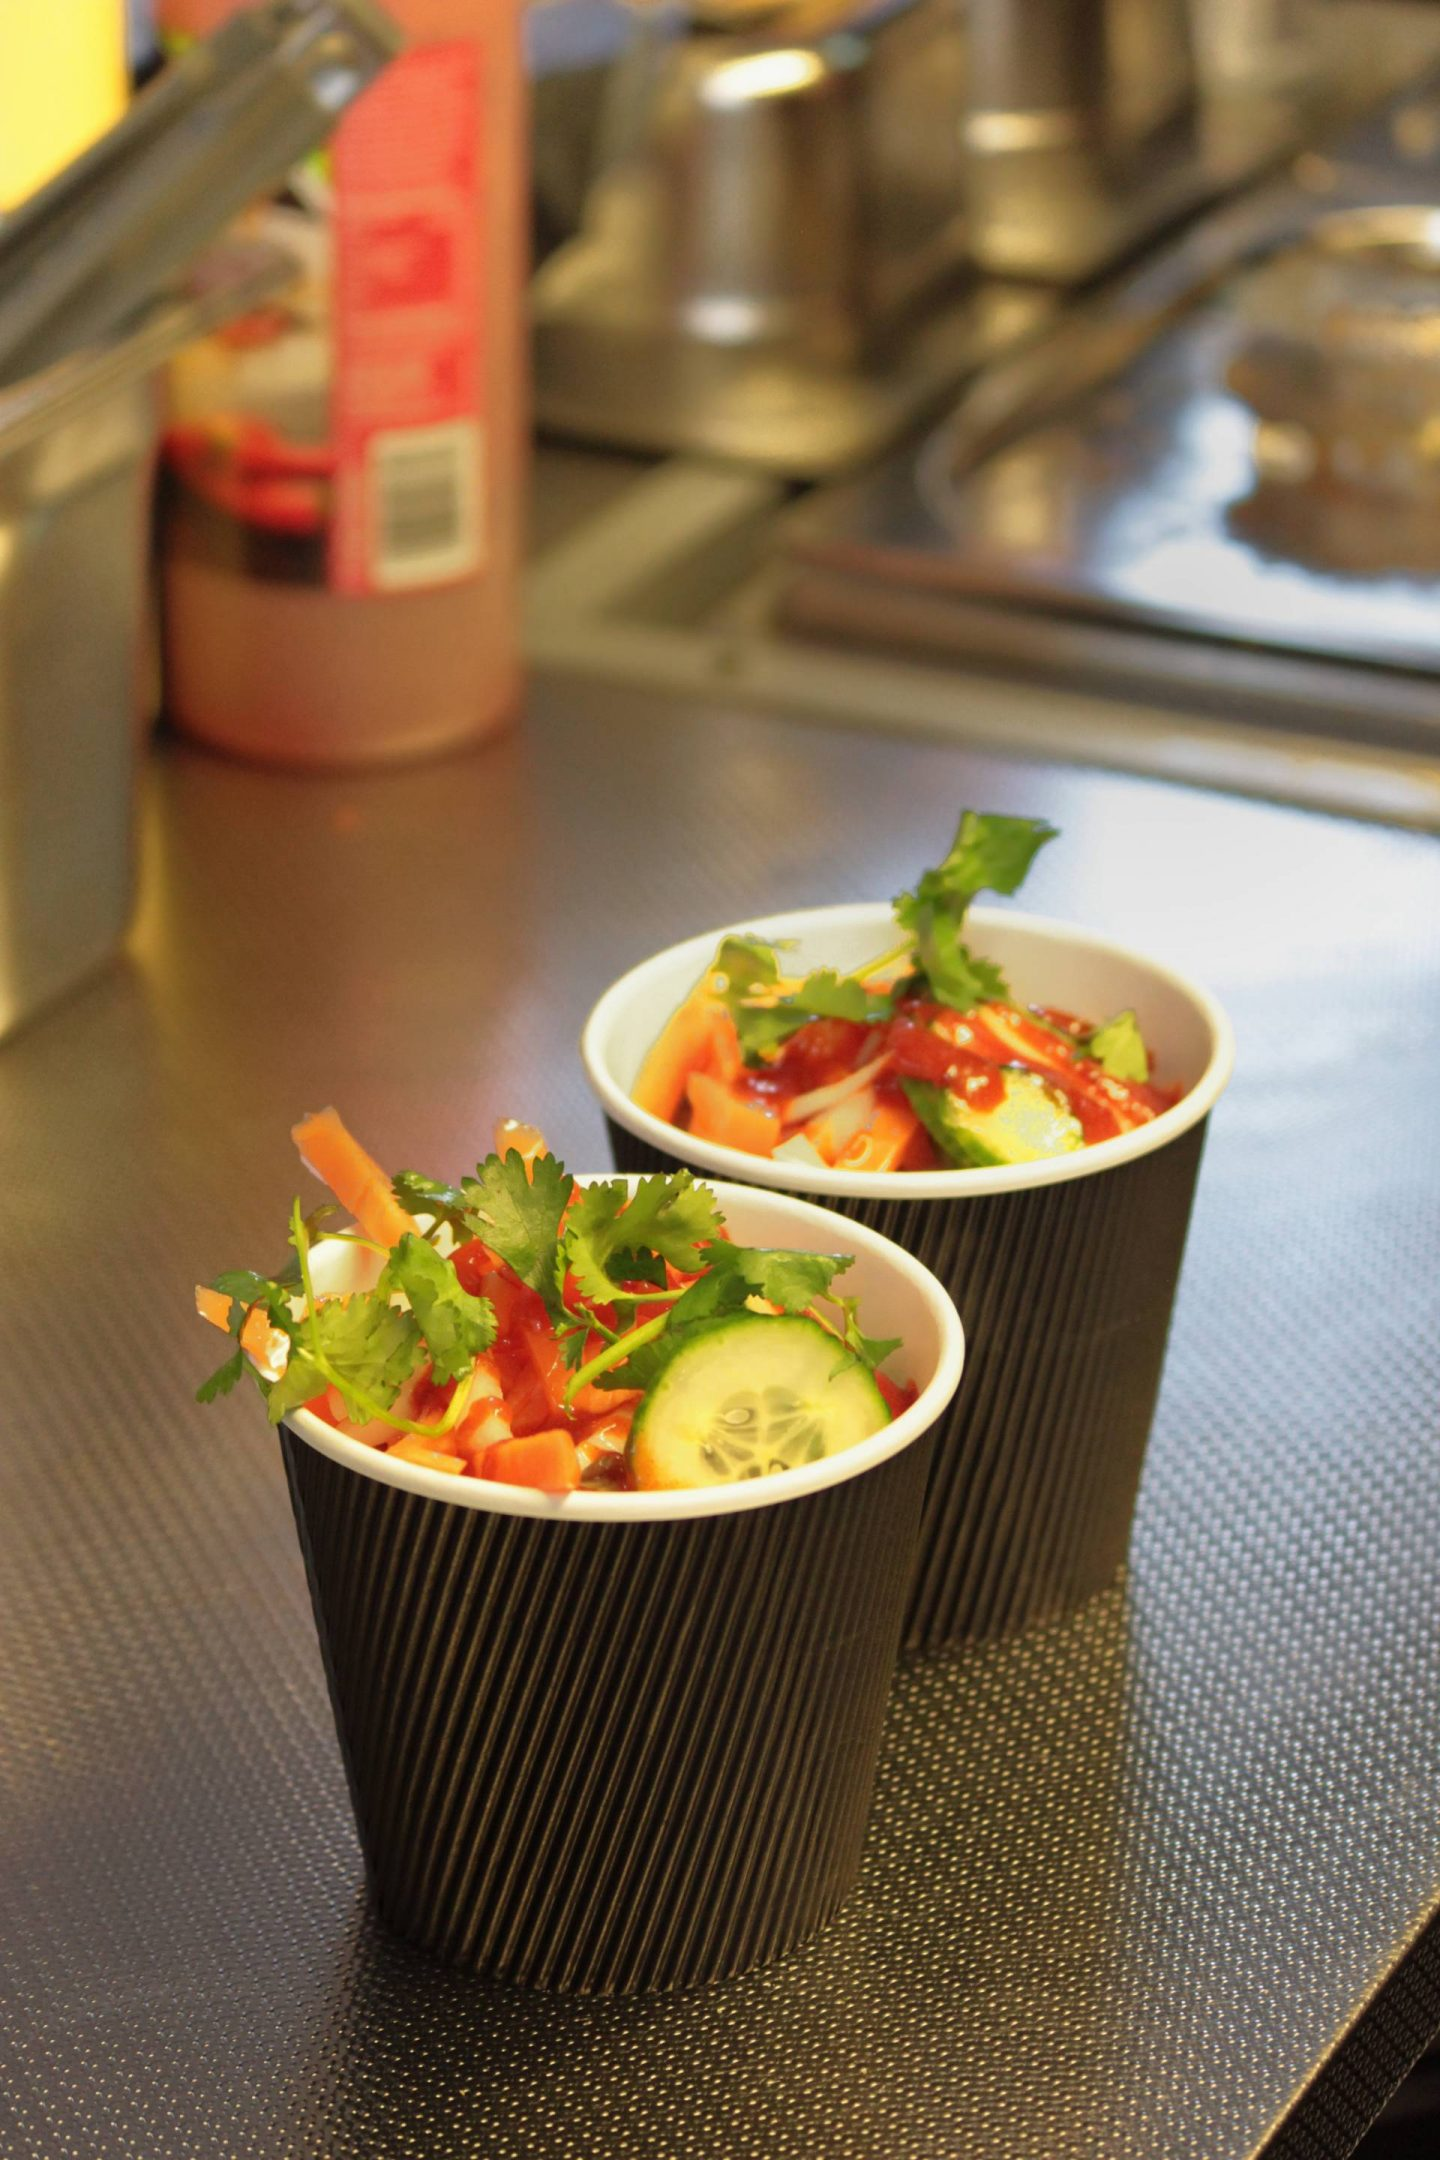 Food pots from Banh Mi MK Newport Pagnell Street Food